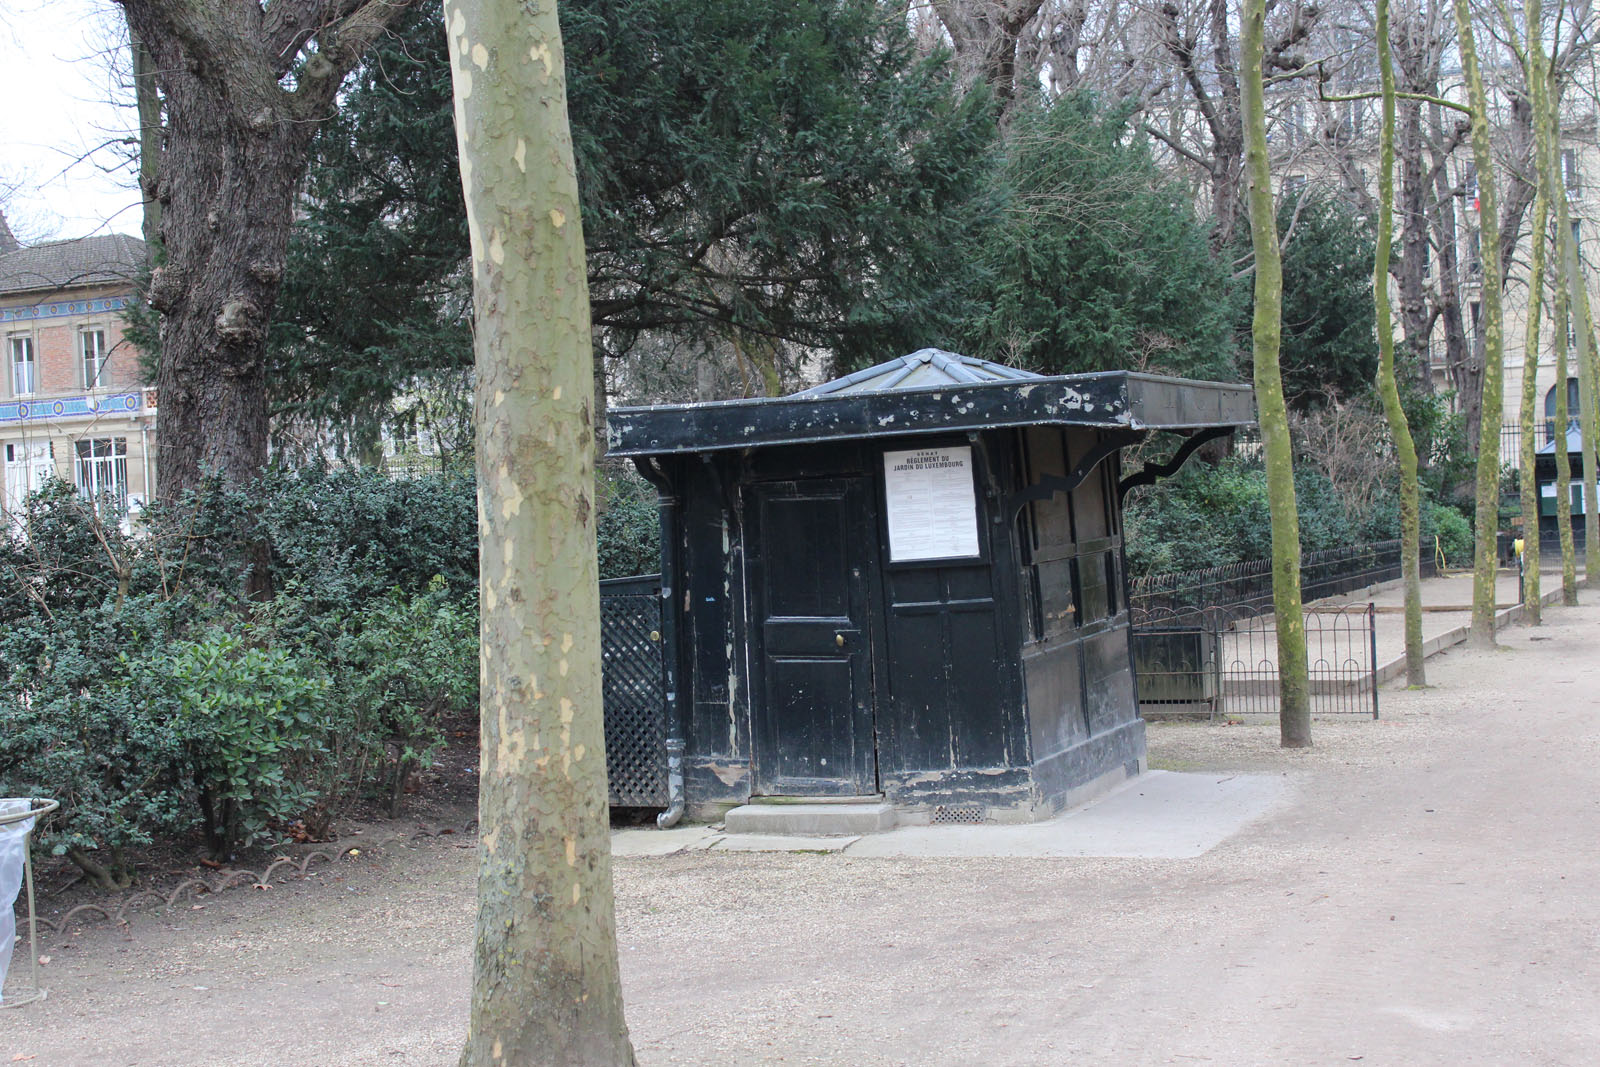 crepe-kiosk-paris-france-alicia-drake